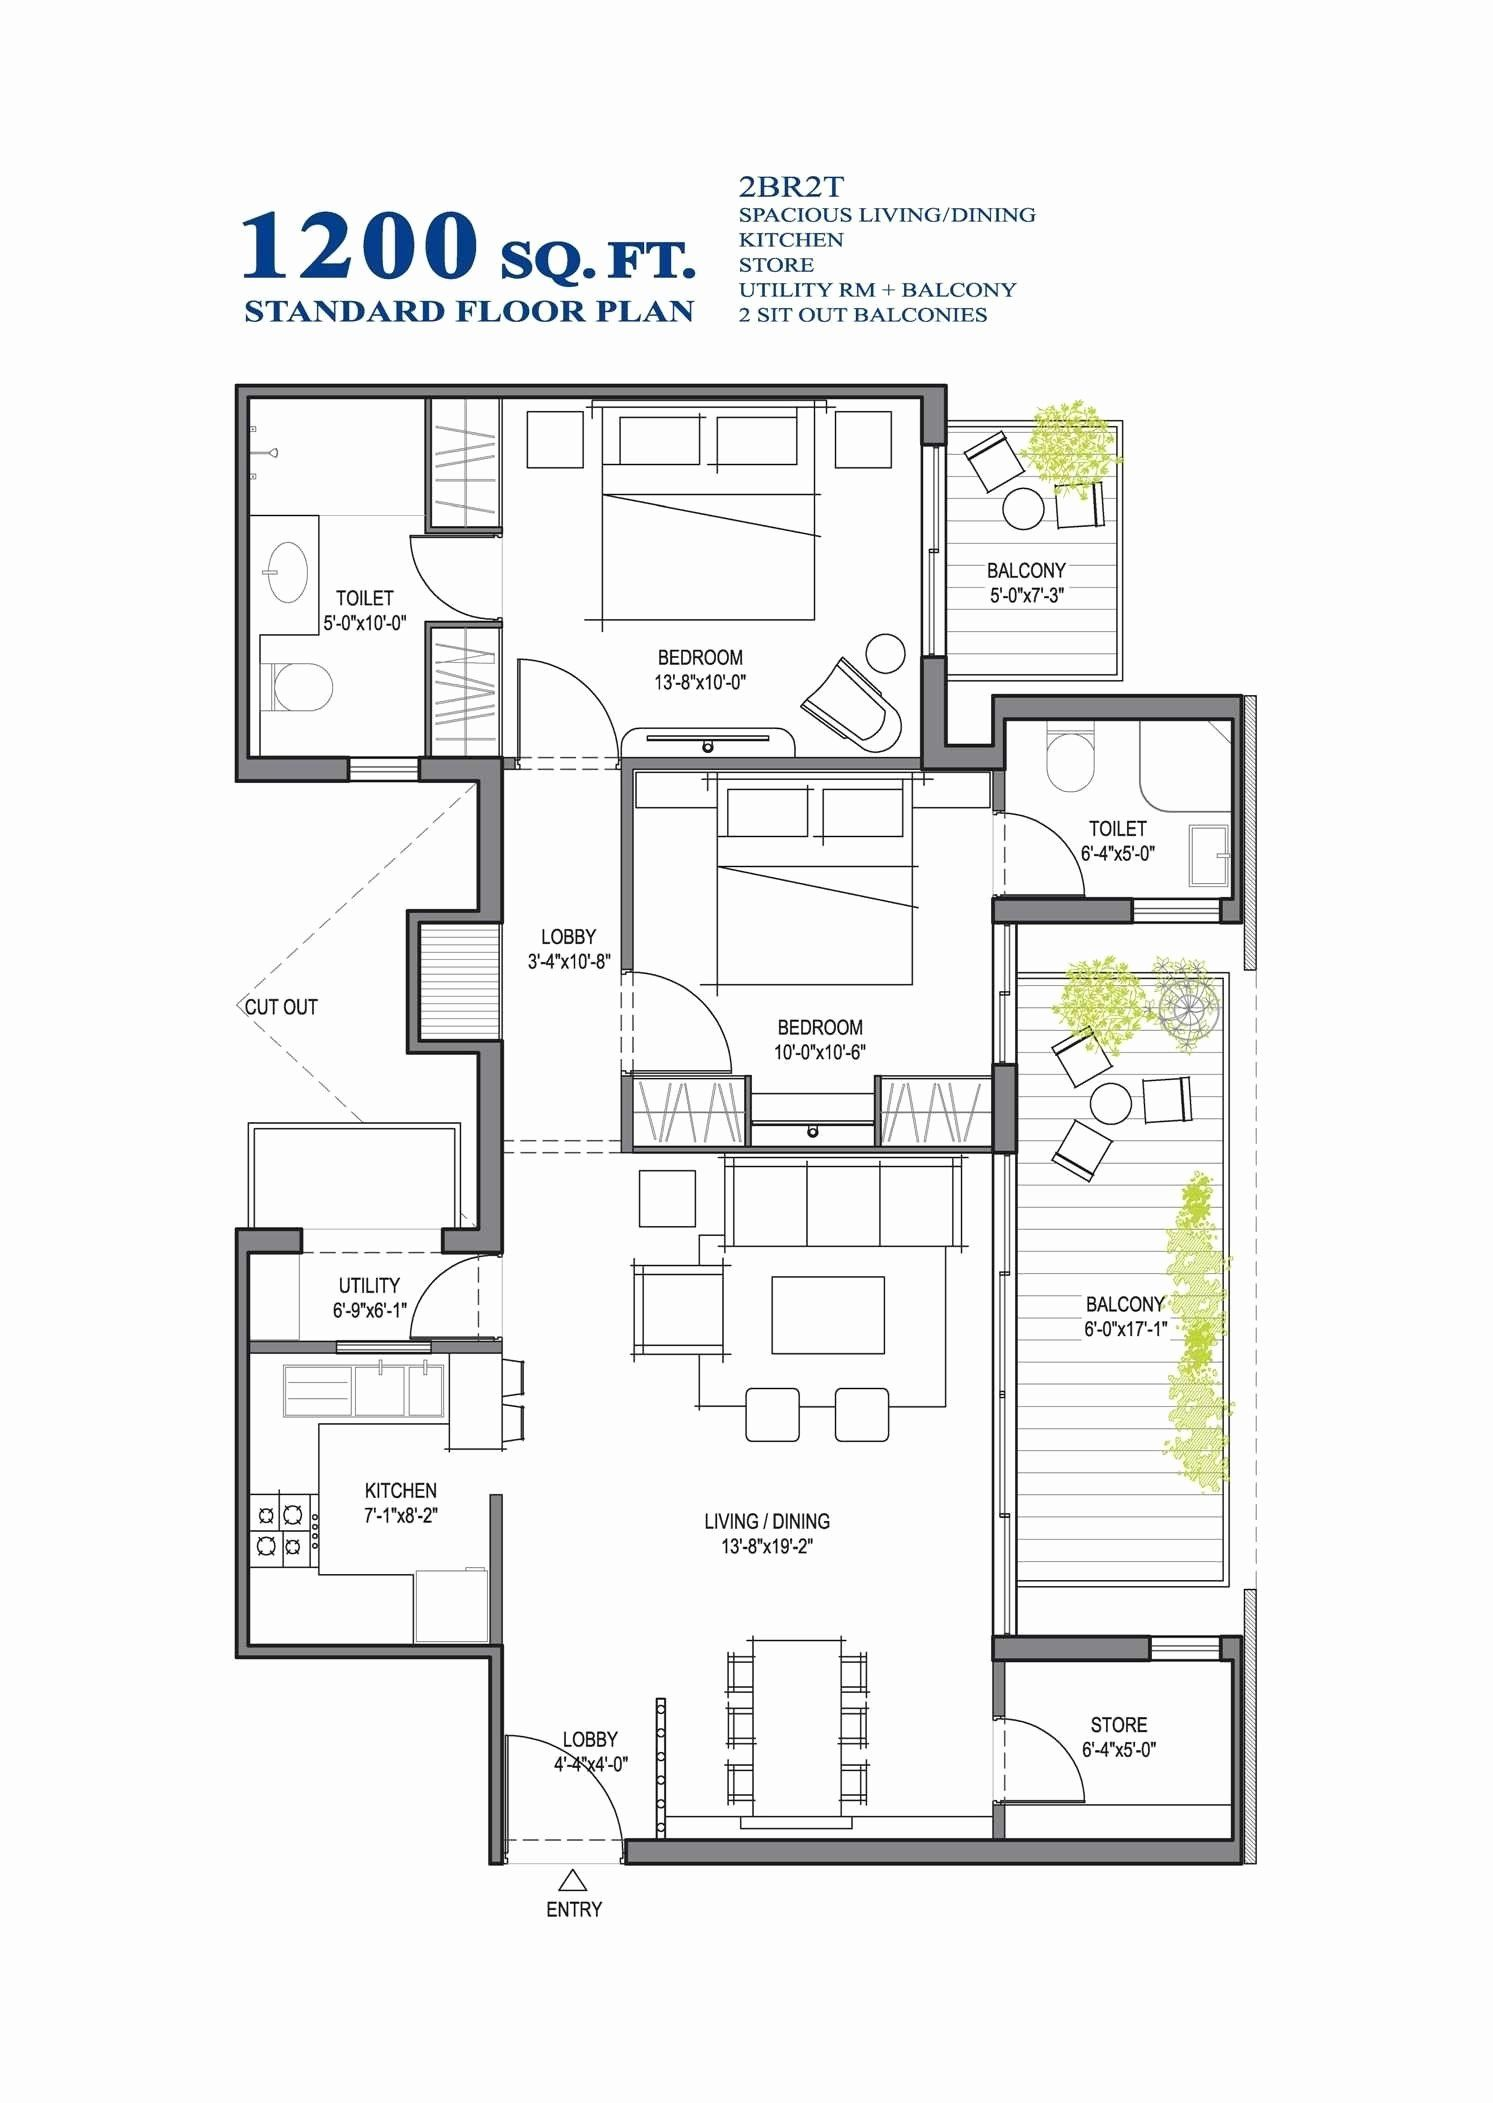 1000 Square Ft House Plans Inspirational Amazing 1200 Square Foot House Indian Design And Floor Pl Indian House Plans Basement House Plans Bungalow House Plans